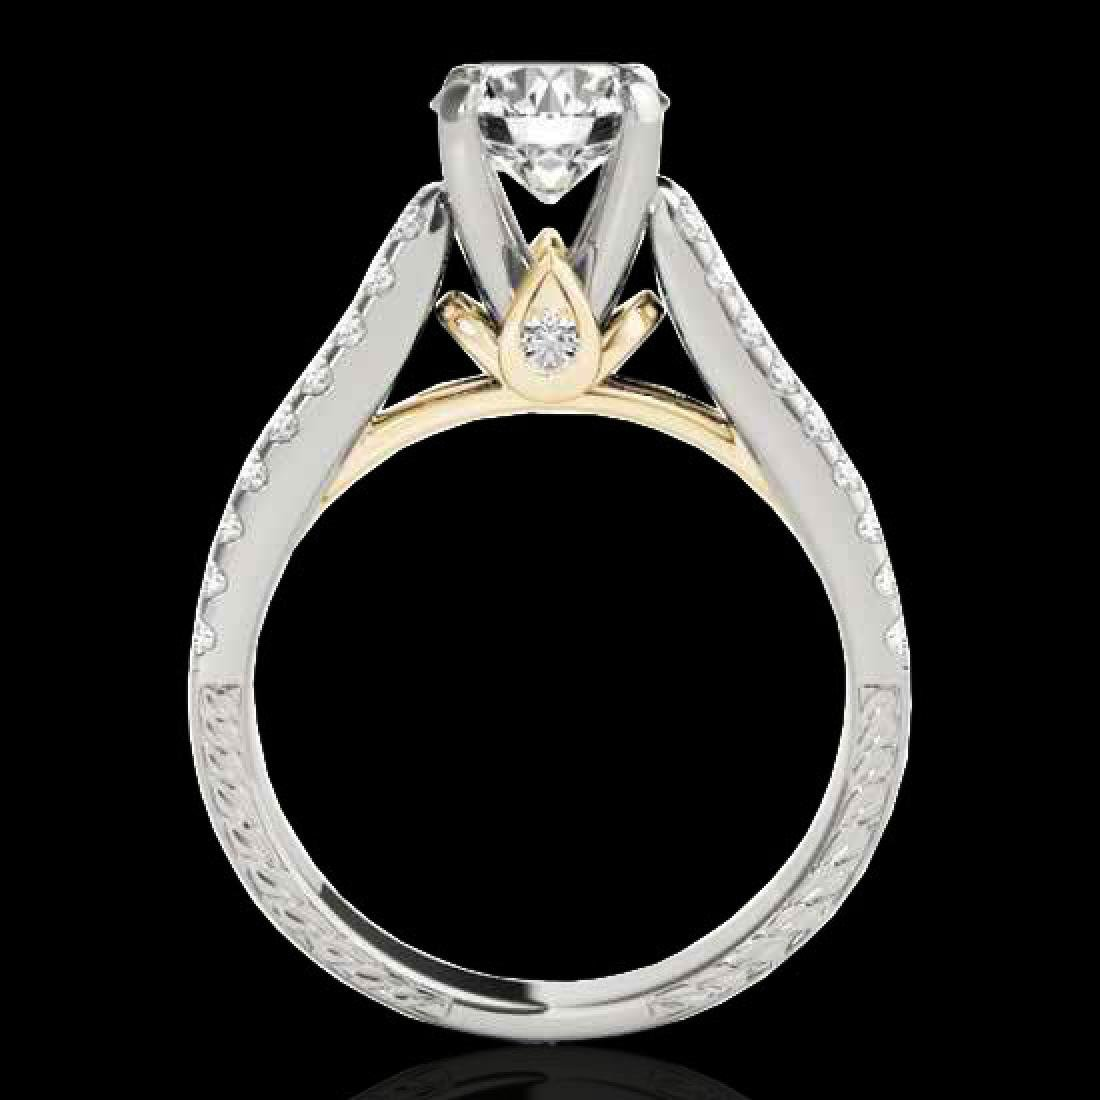 1.61 CTW H-SI/I Certified Diamond Pave Ring 10K White & - 2